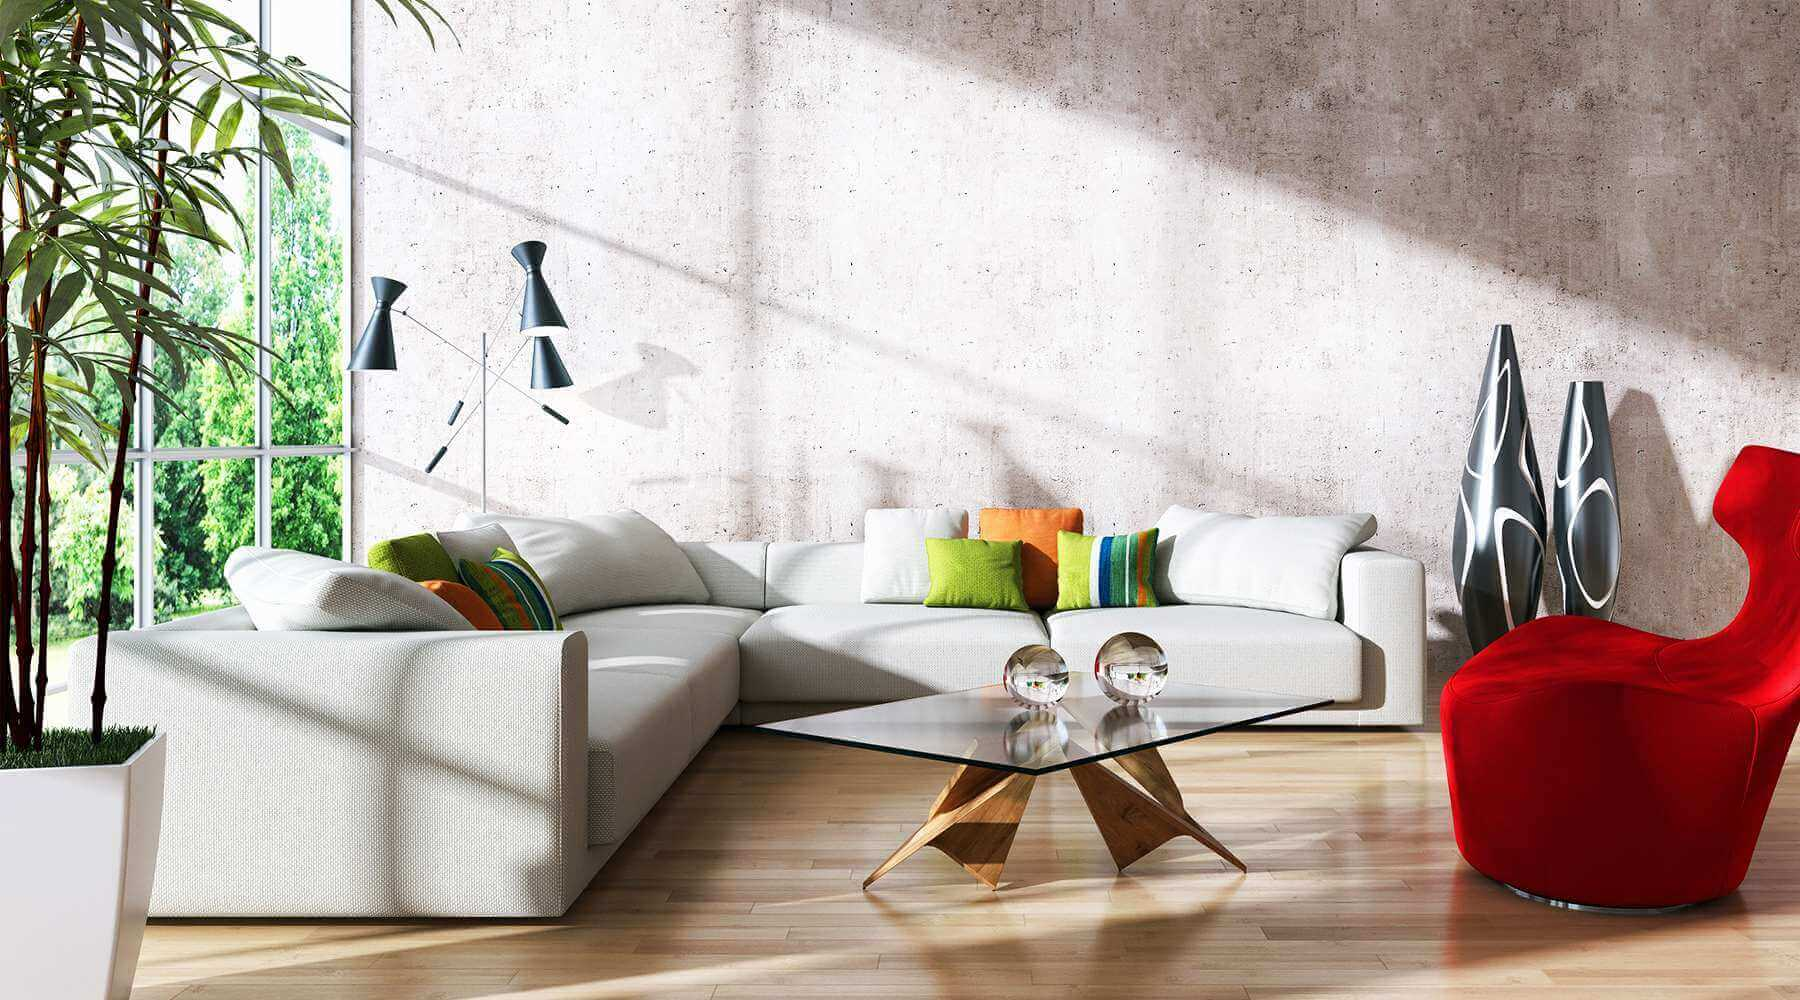 Dream Sofa Home - Your Dream Sofa, Designed by You